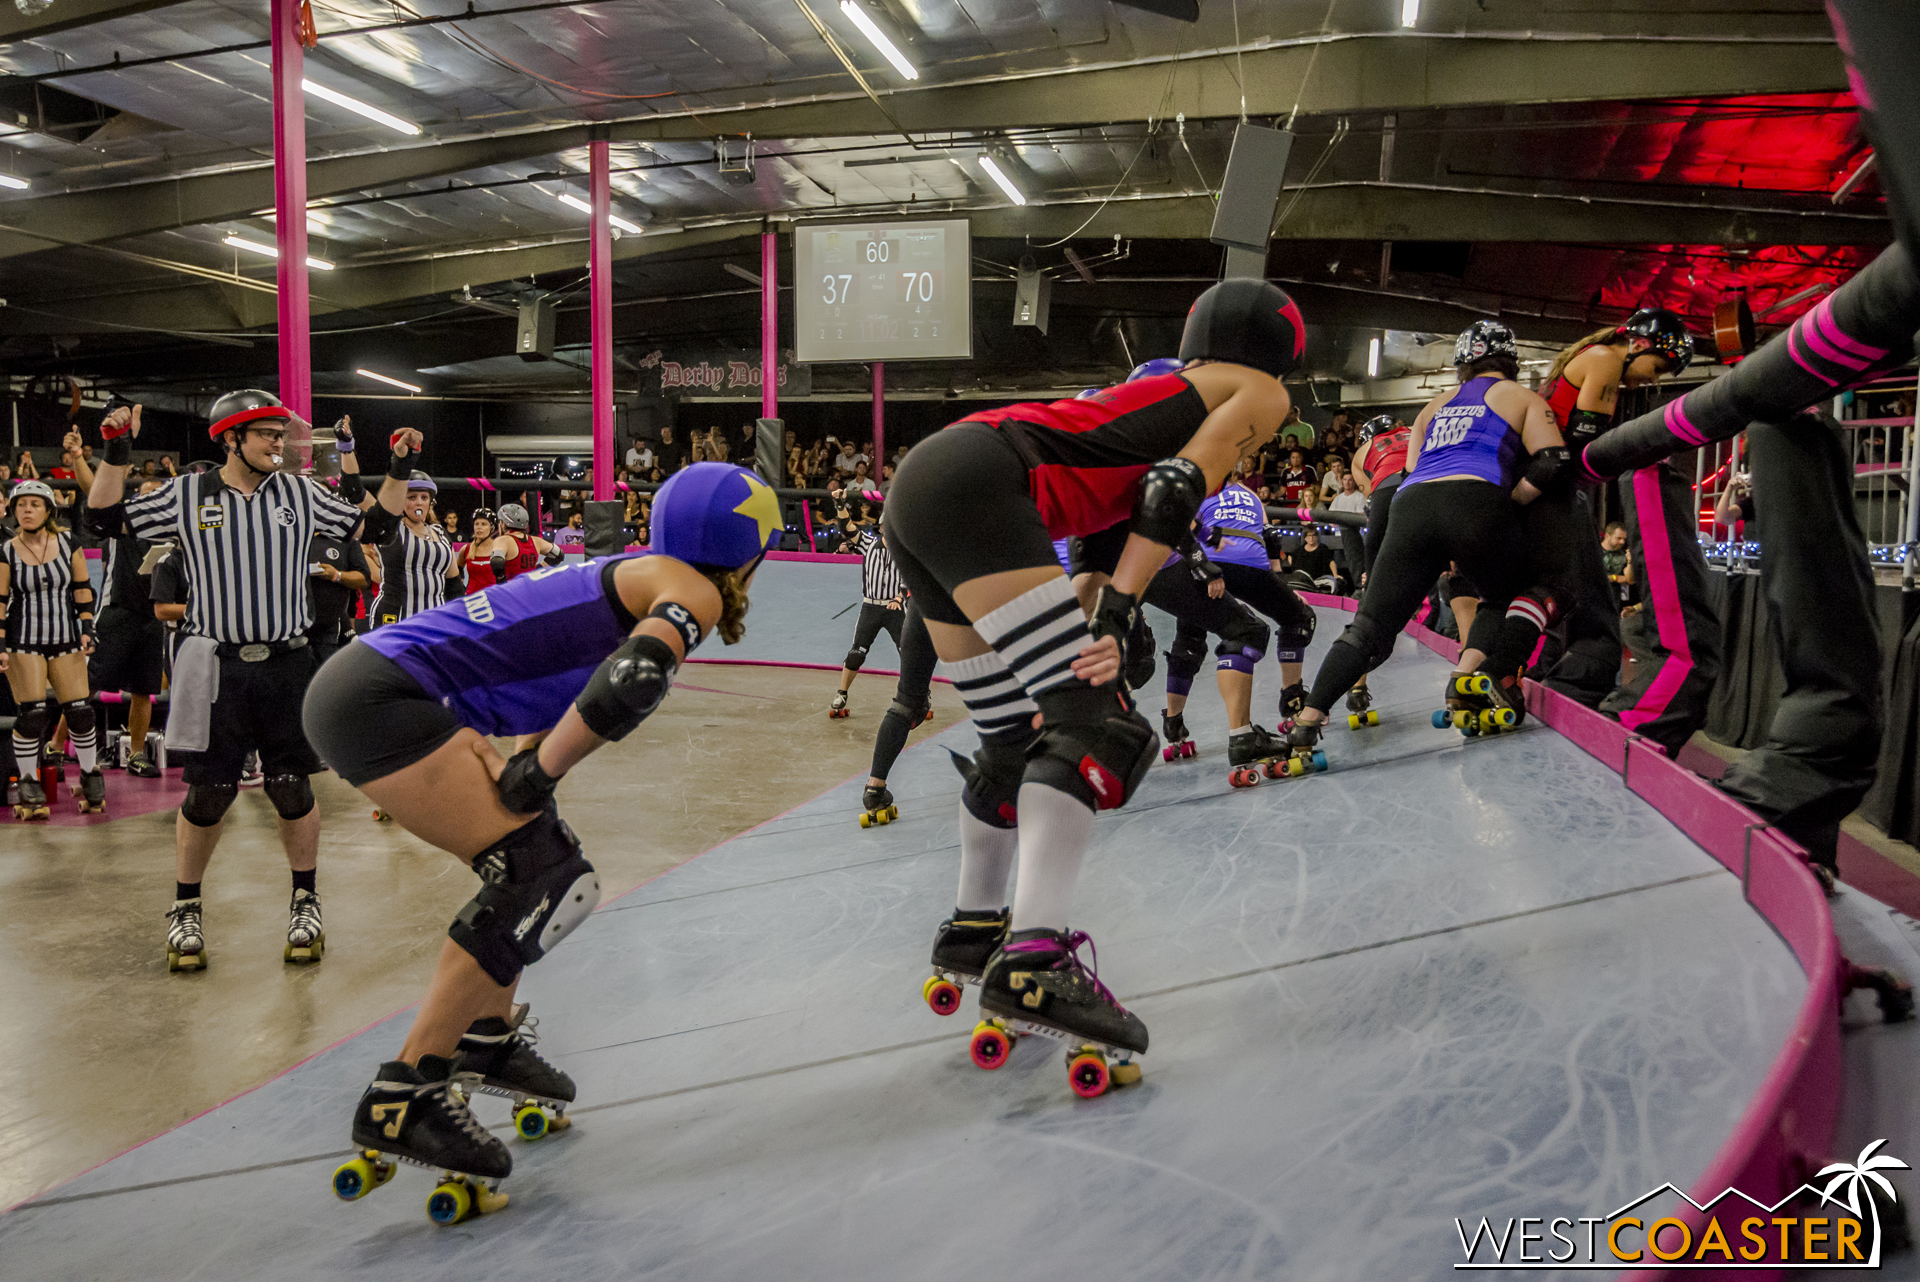 The jammers at the ready position, prepared to skate forth seconds after the blockers begin.